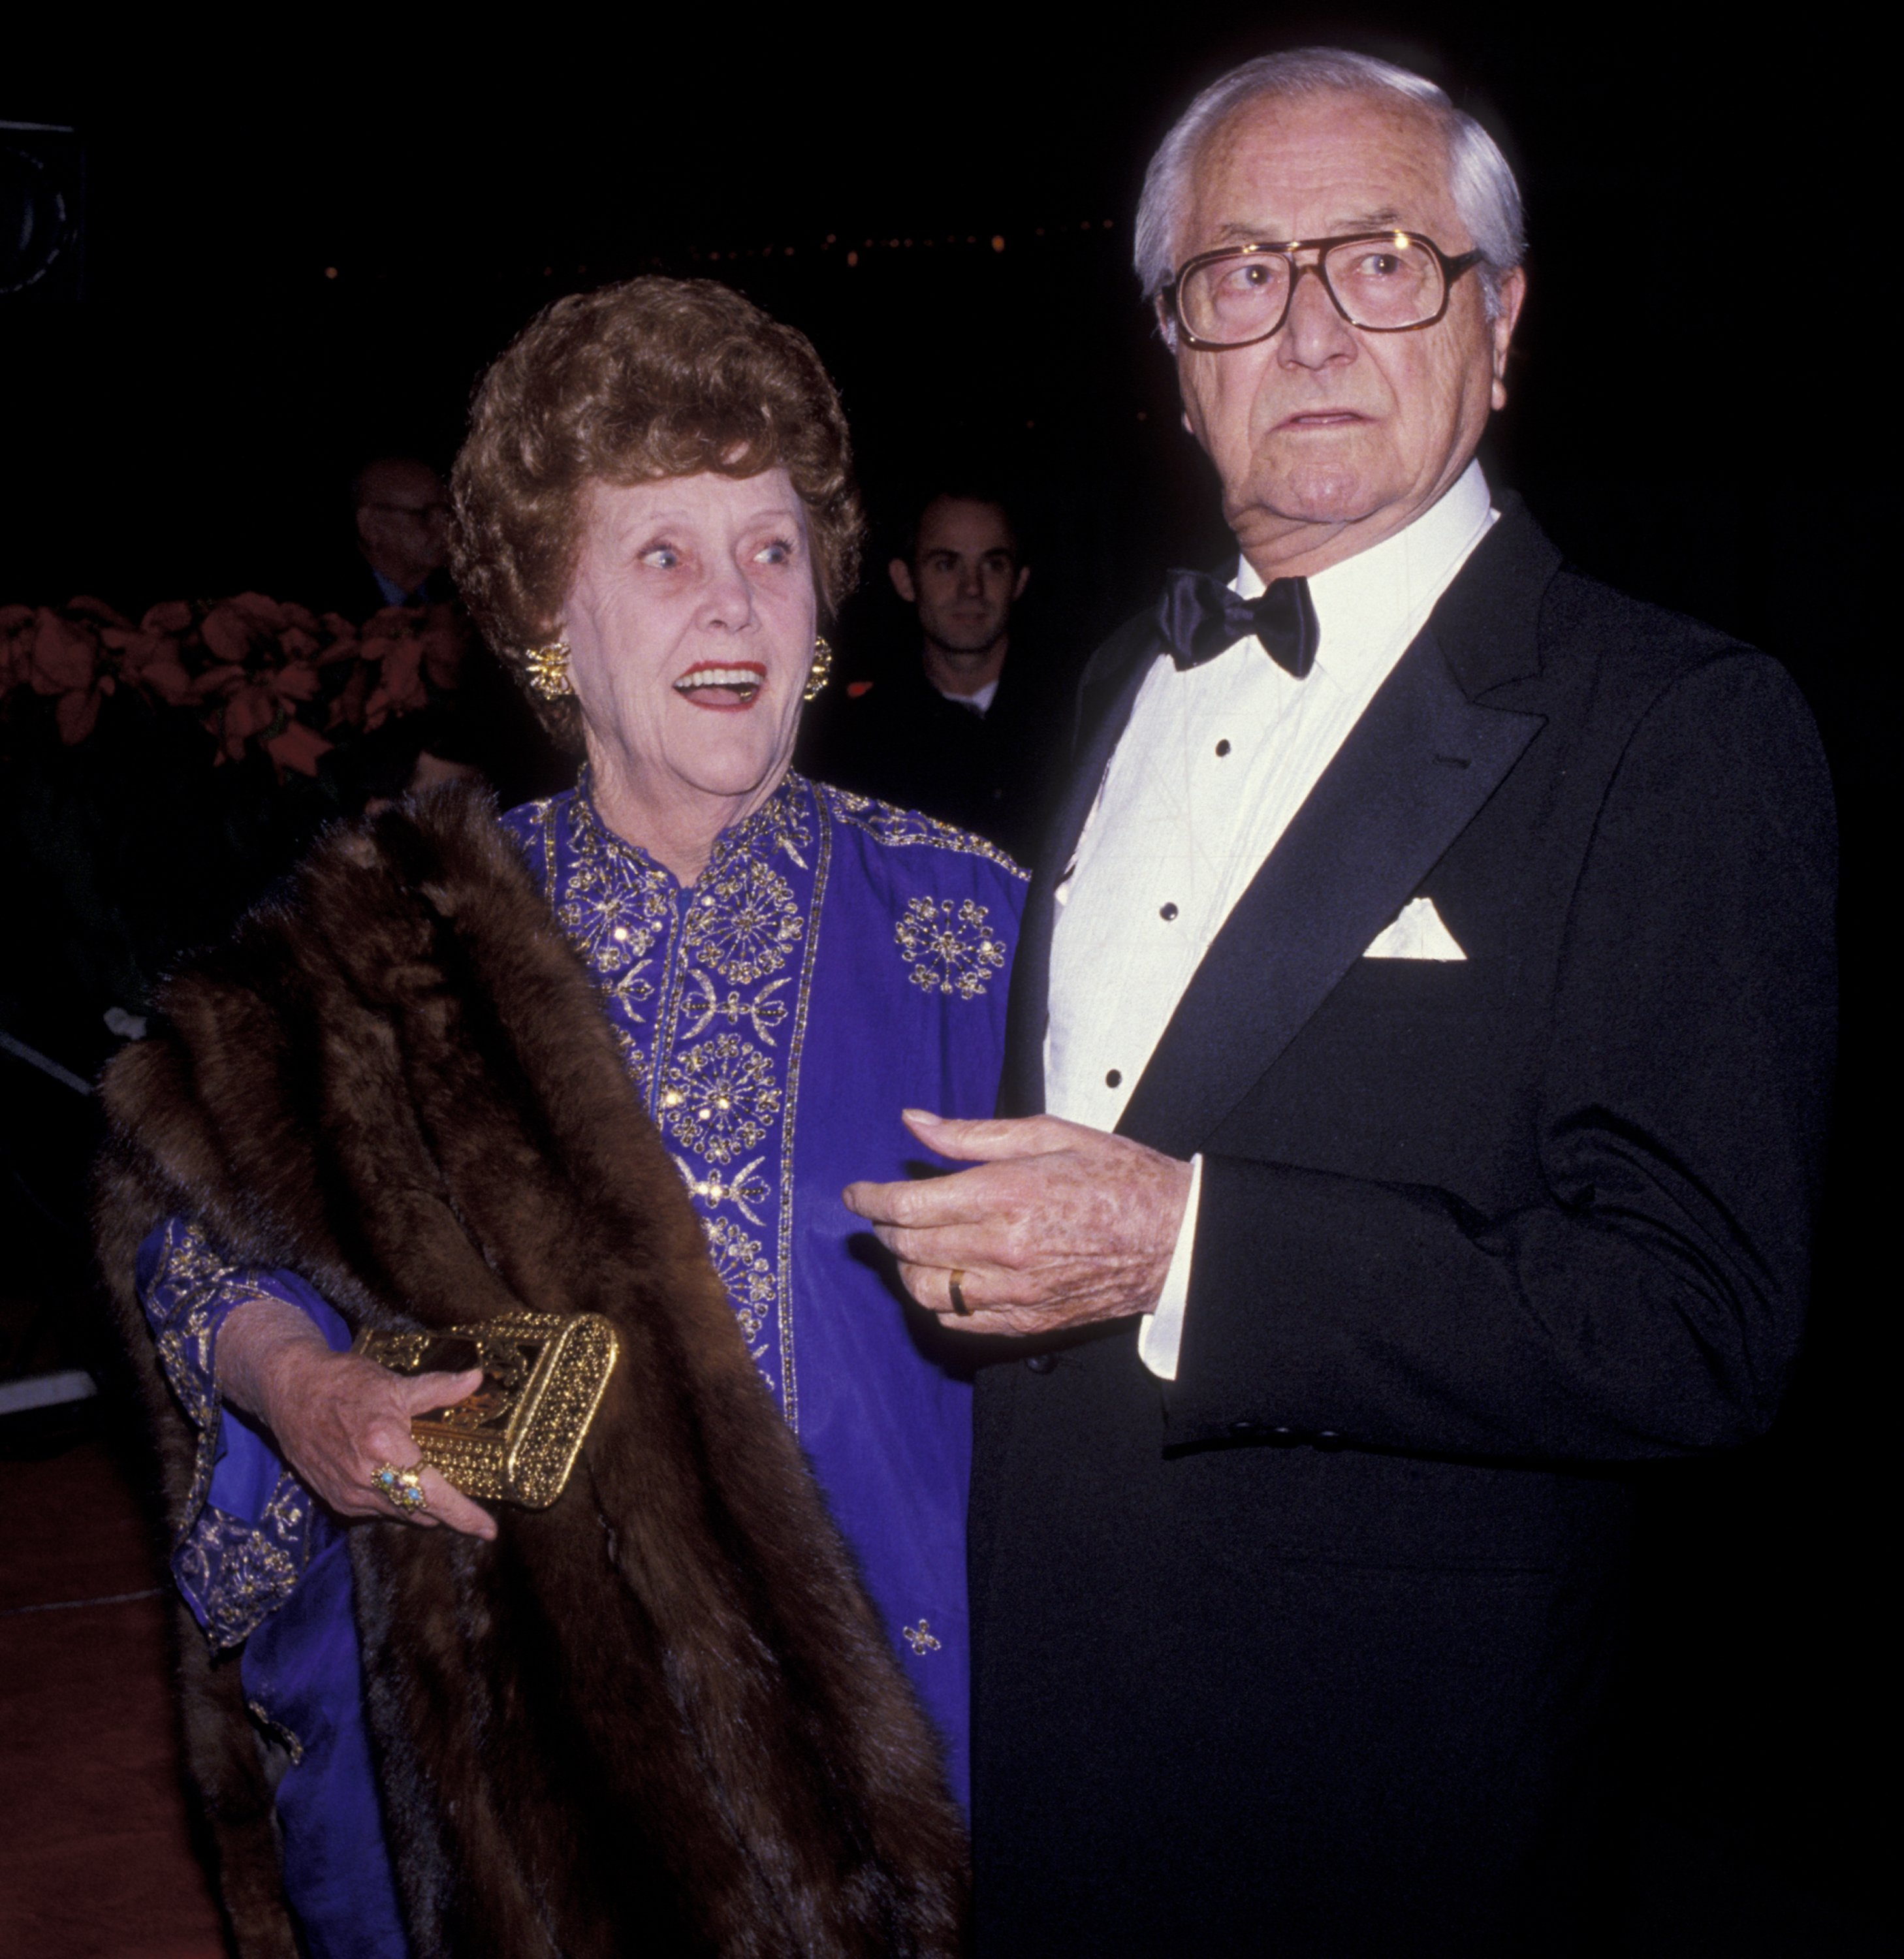 Robert Young and wife Elizabeth Young at the 36th Annual Primetime Emmy Awards on September 23, 1984. | Source: Getty Images.